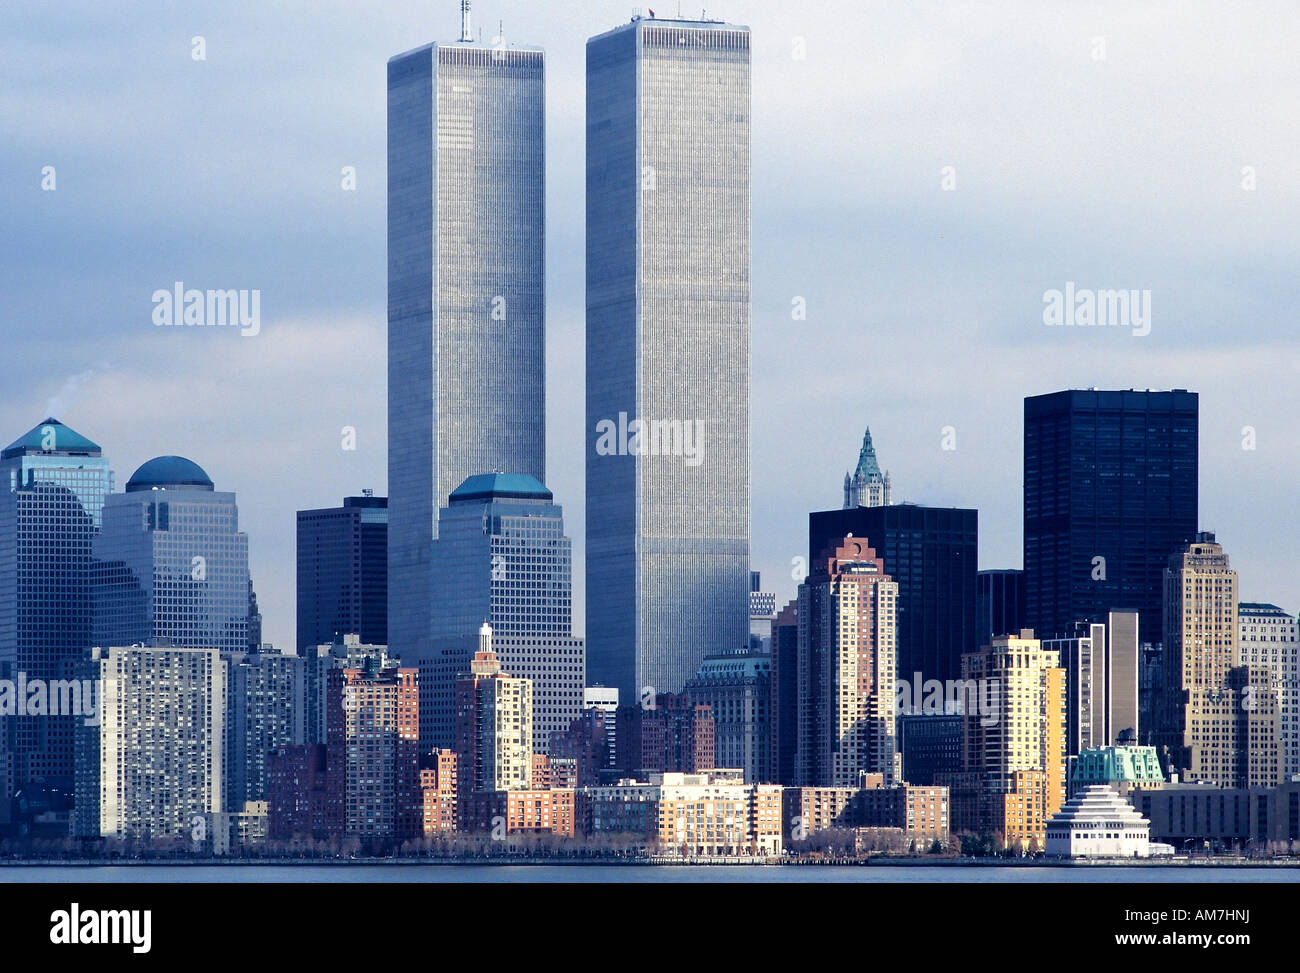 Hudson River Skyline with World Trade Center, 1997, New York City, USA - Stock Image